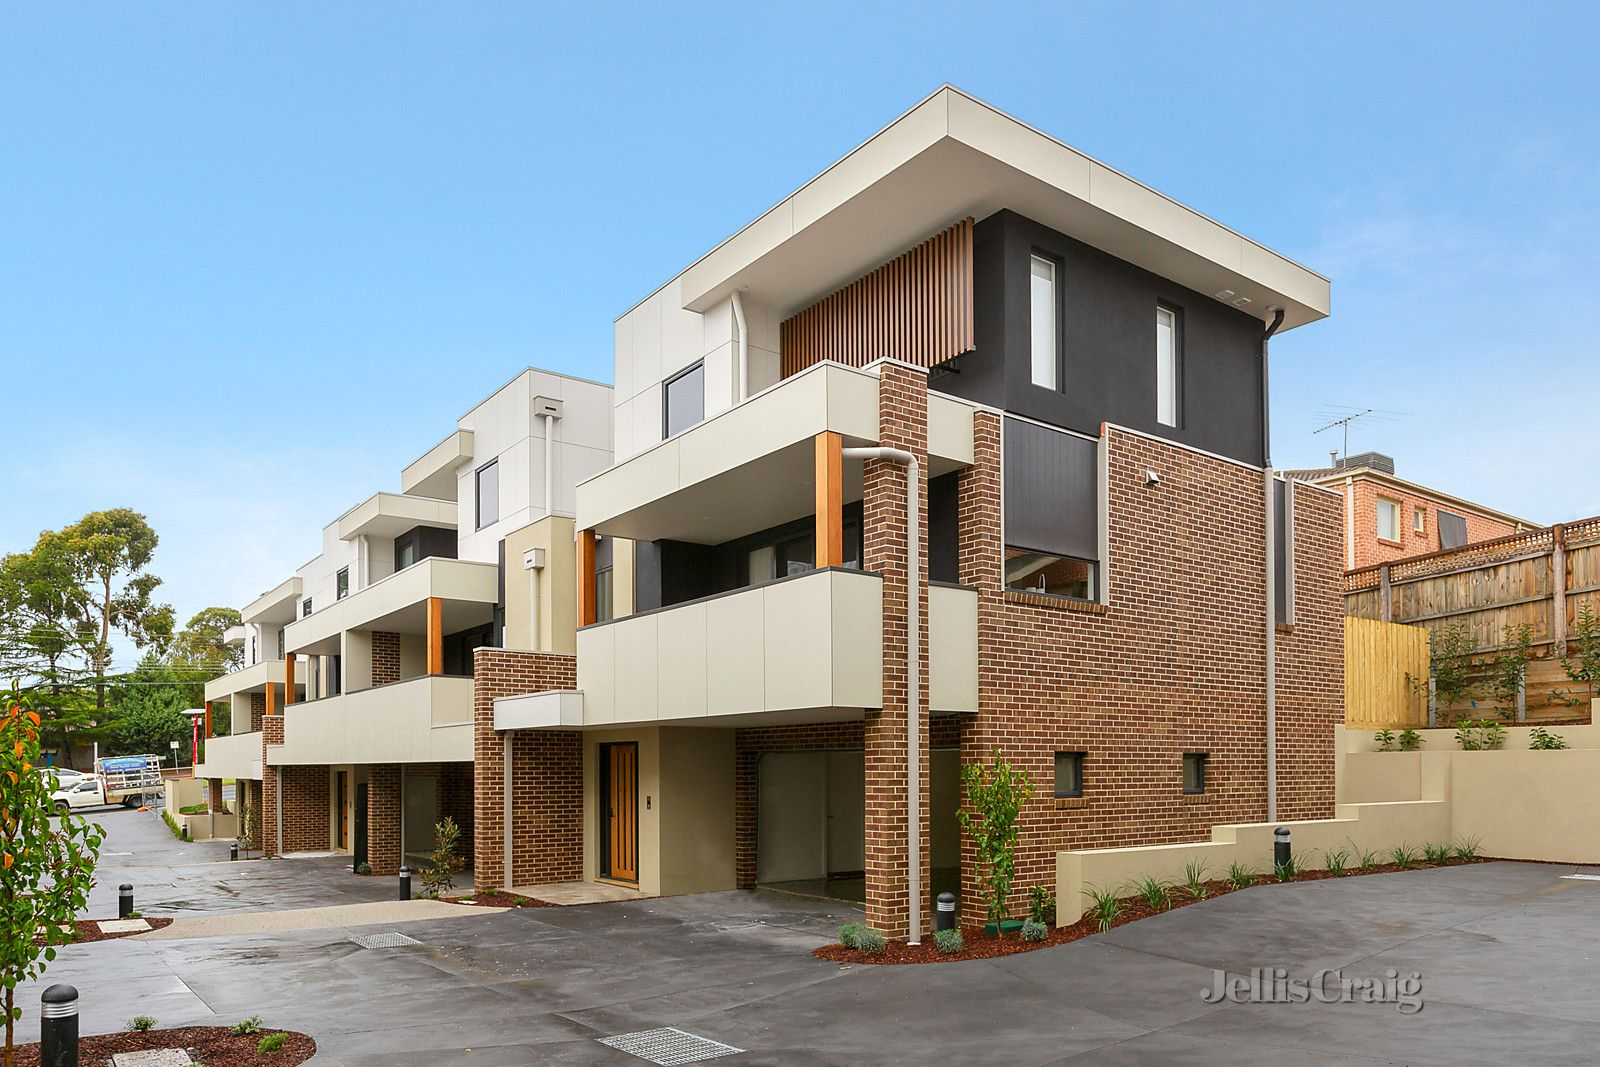 9/251 Williamsons Road, Templestowe VIC 3106, Image 0